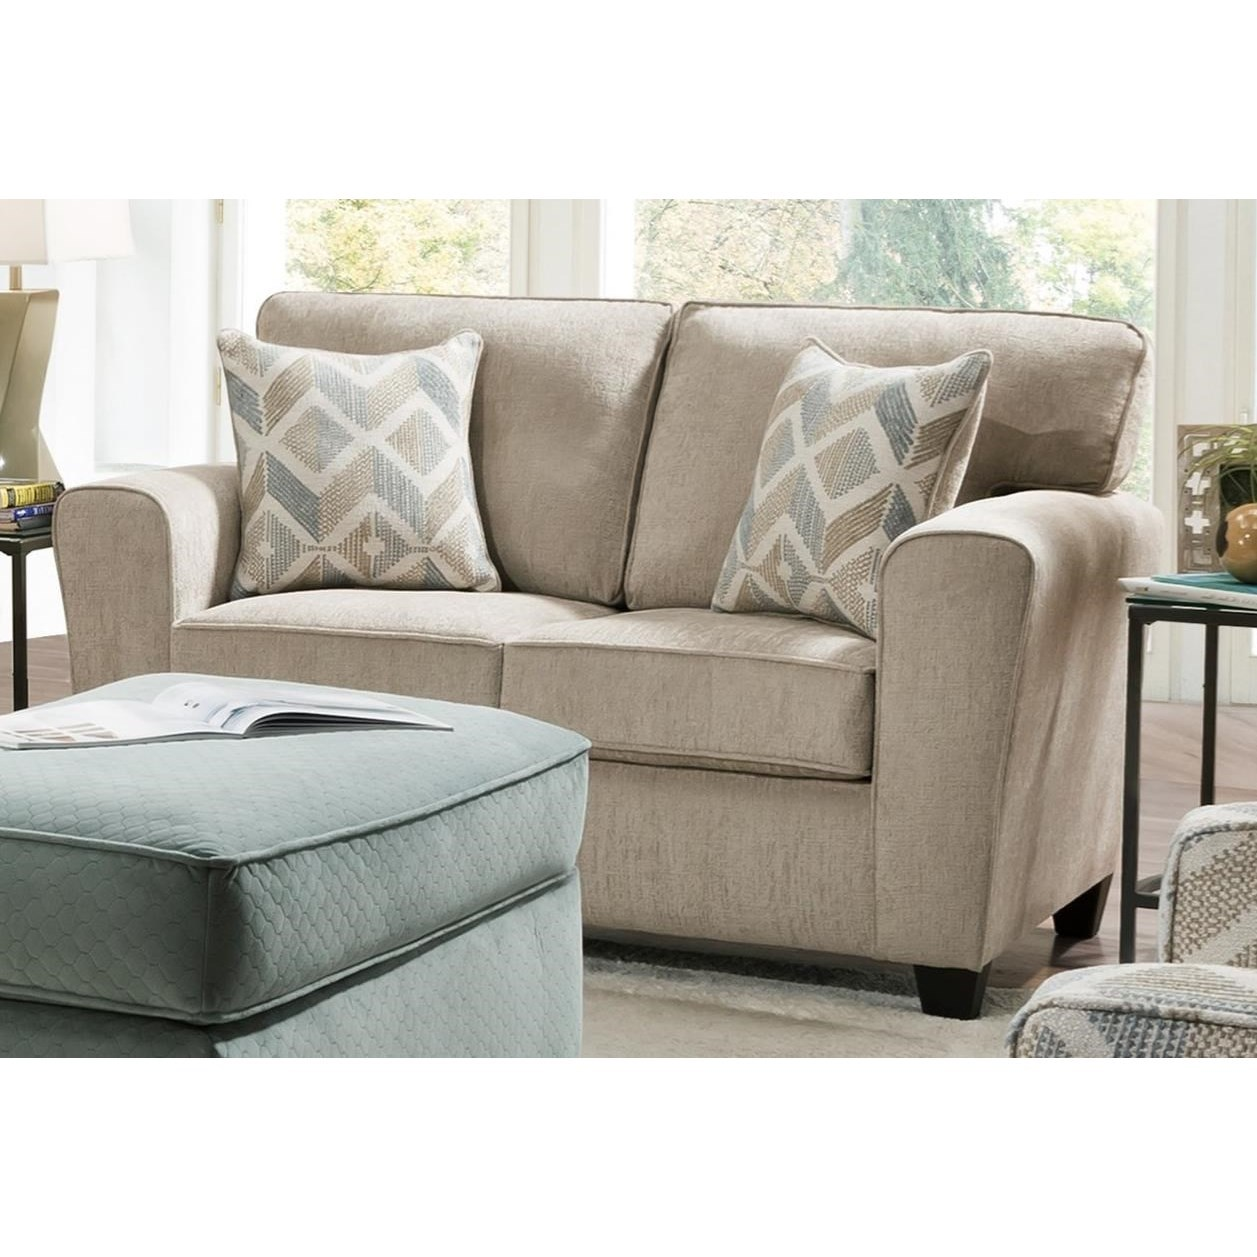 3100 Loveseat by Peak Living at Prime Brothers Furniture